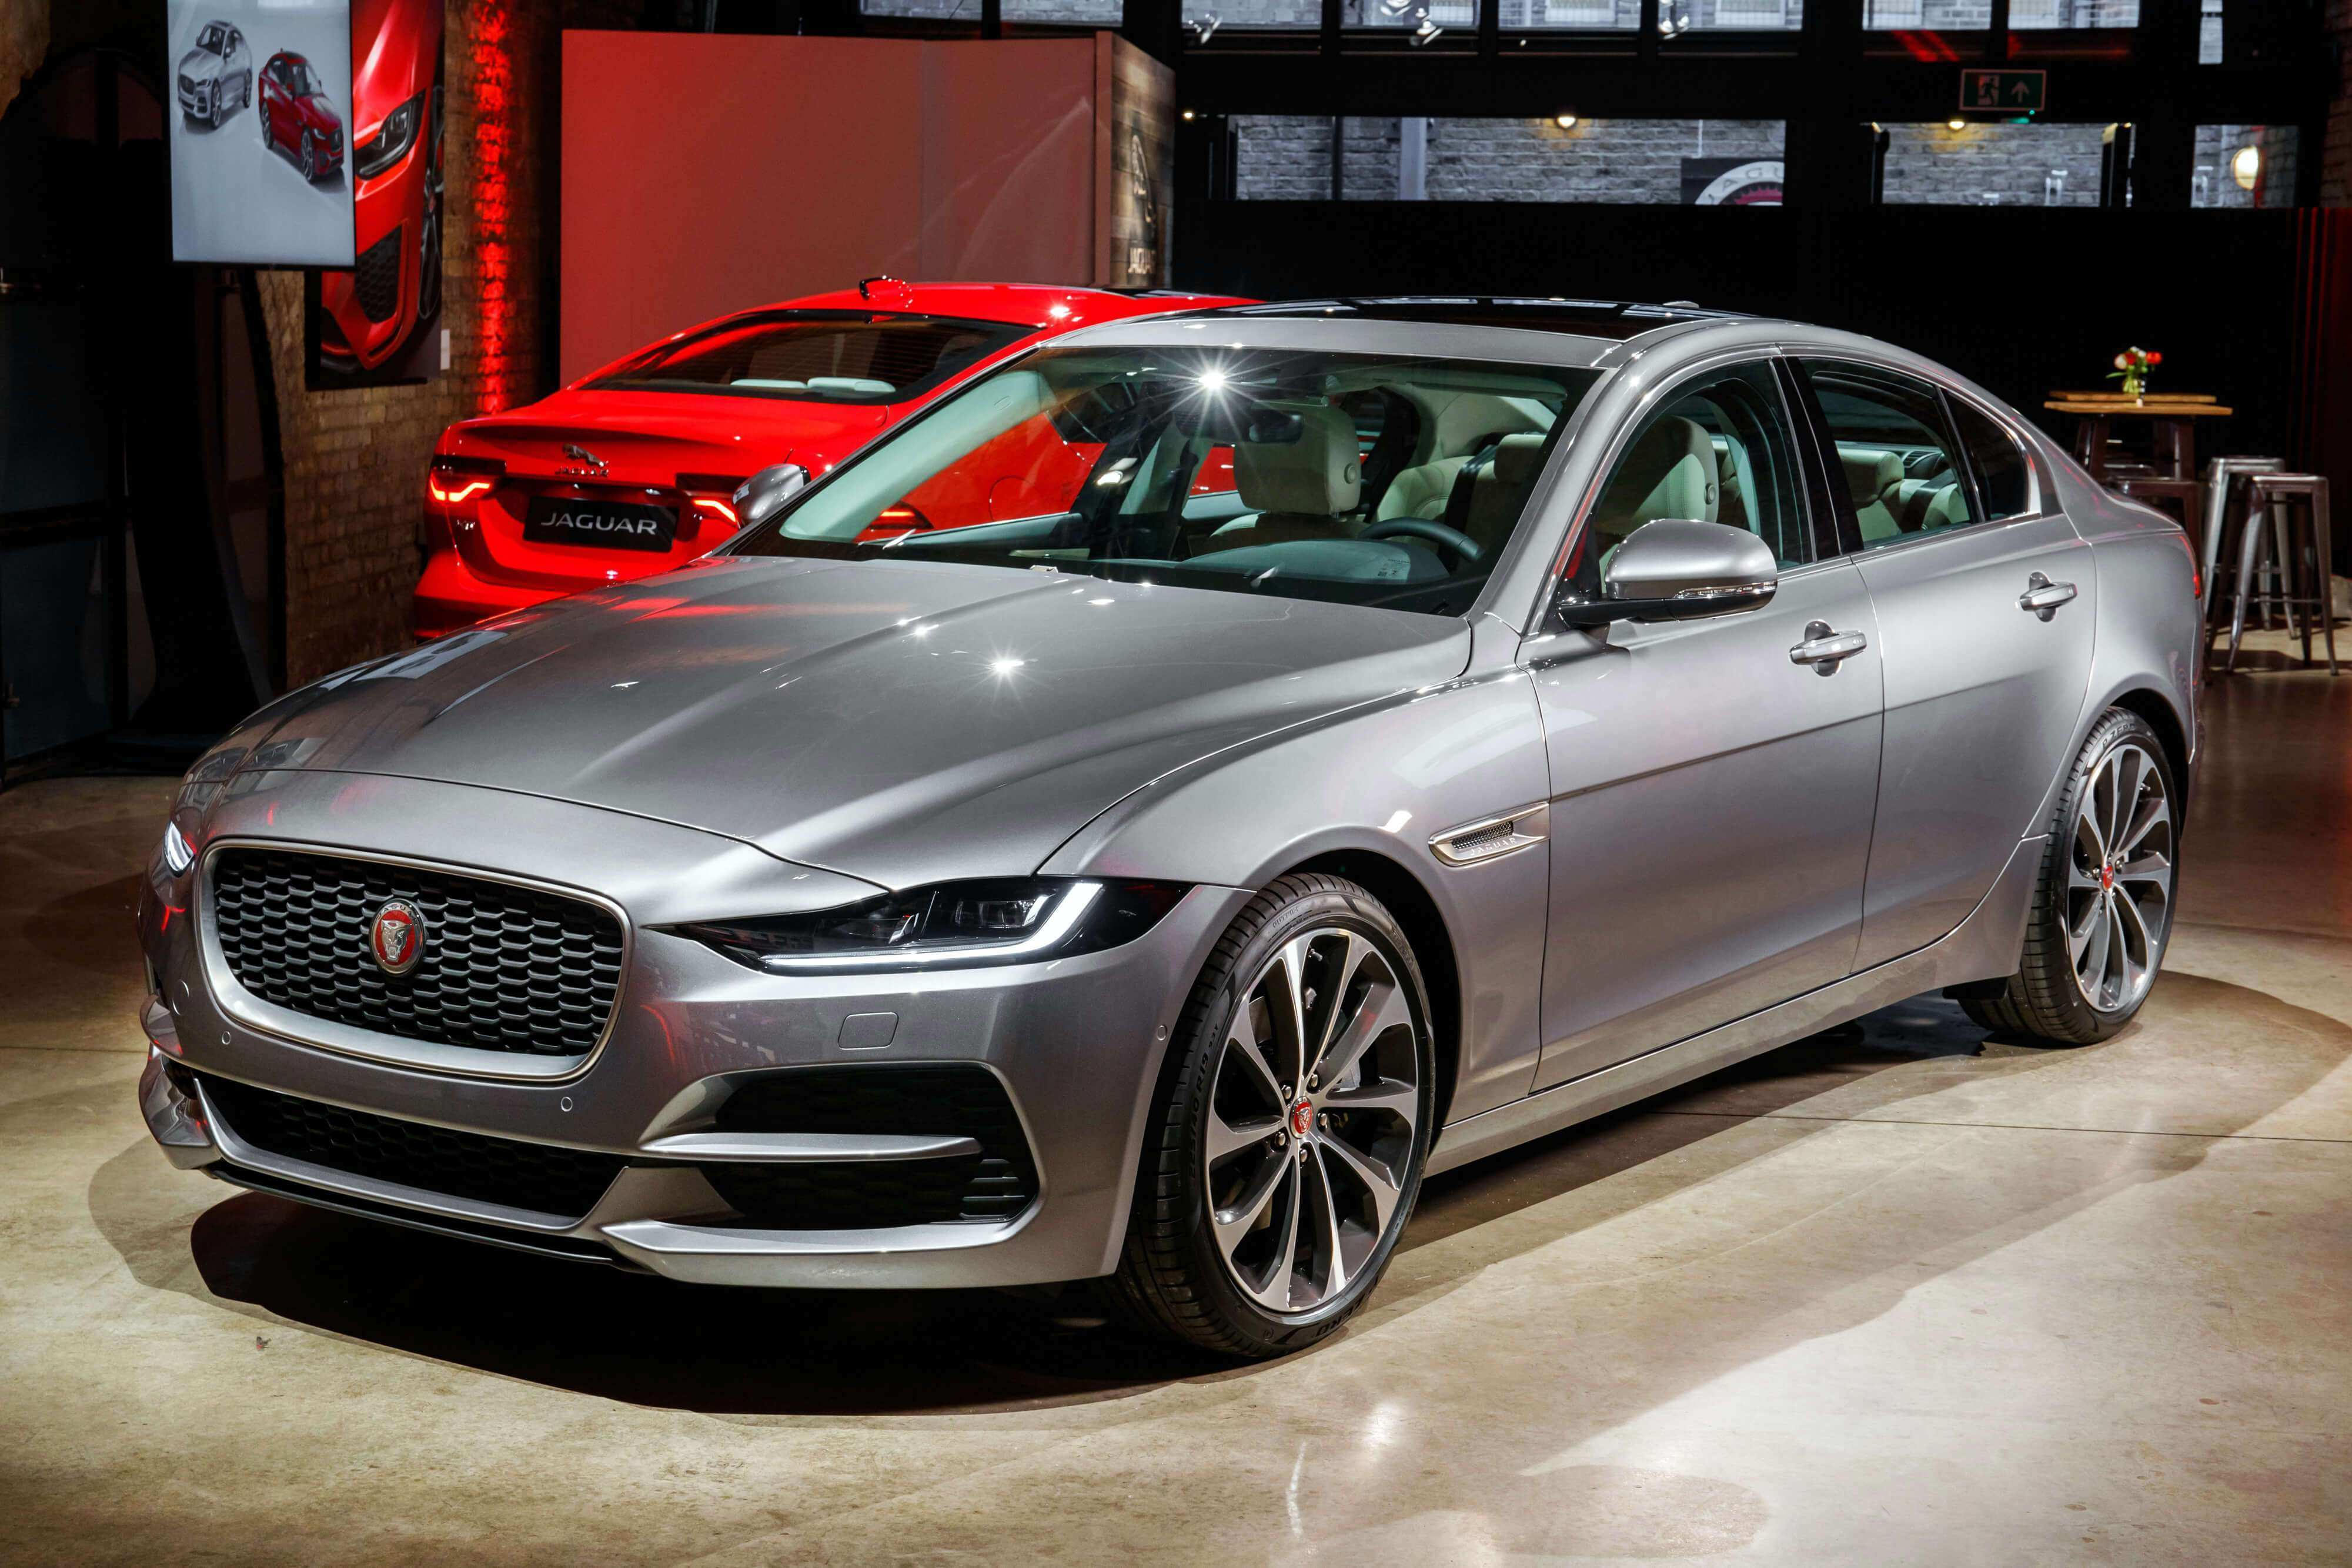 16 All New Jaguar Sedan 2020 Spy Shoot by Jaguar Sedan 2020